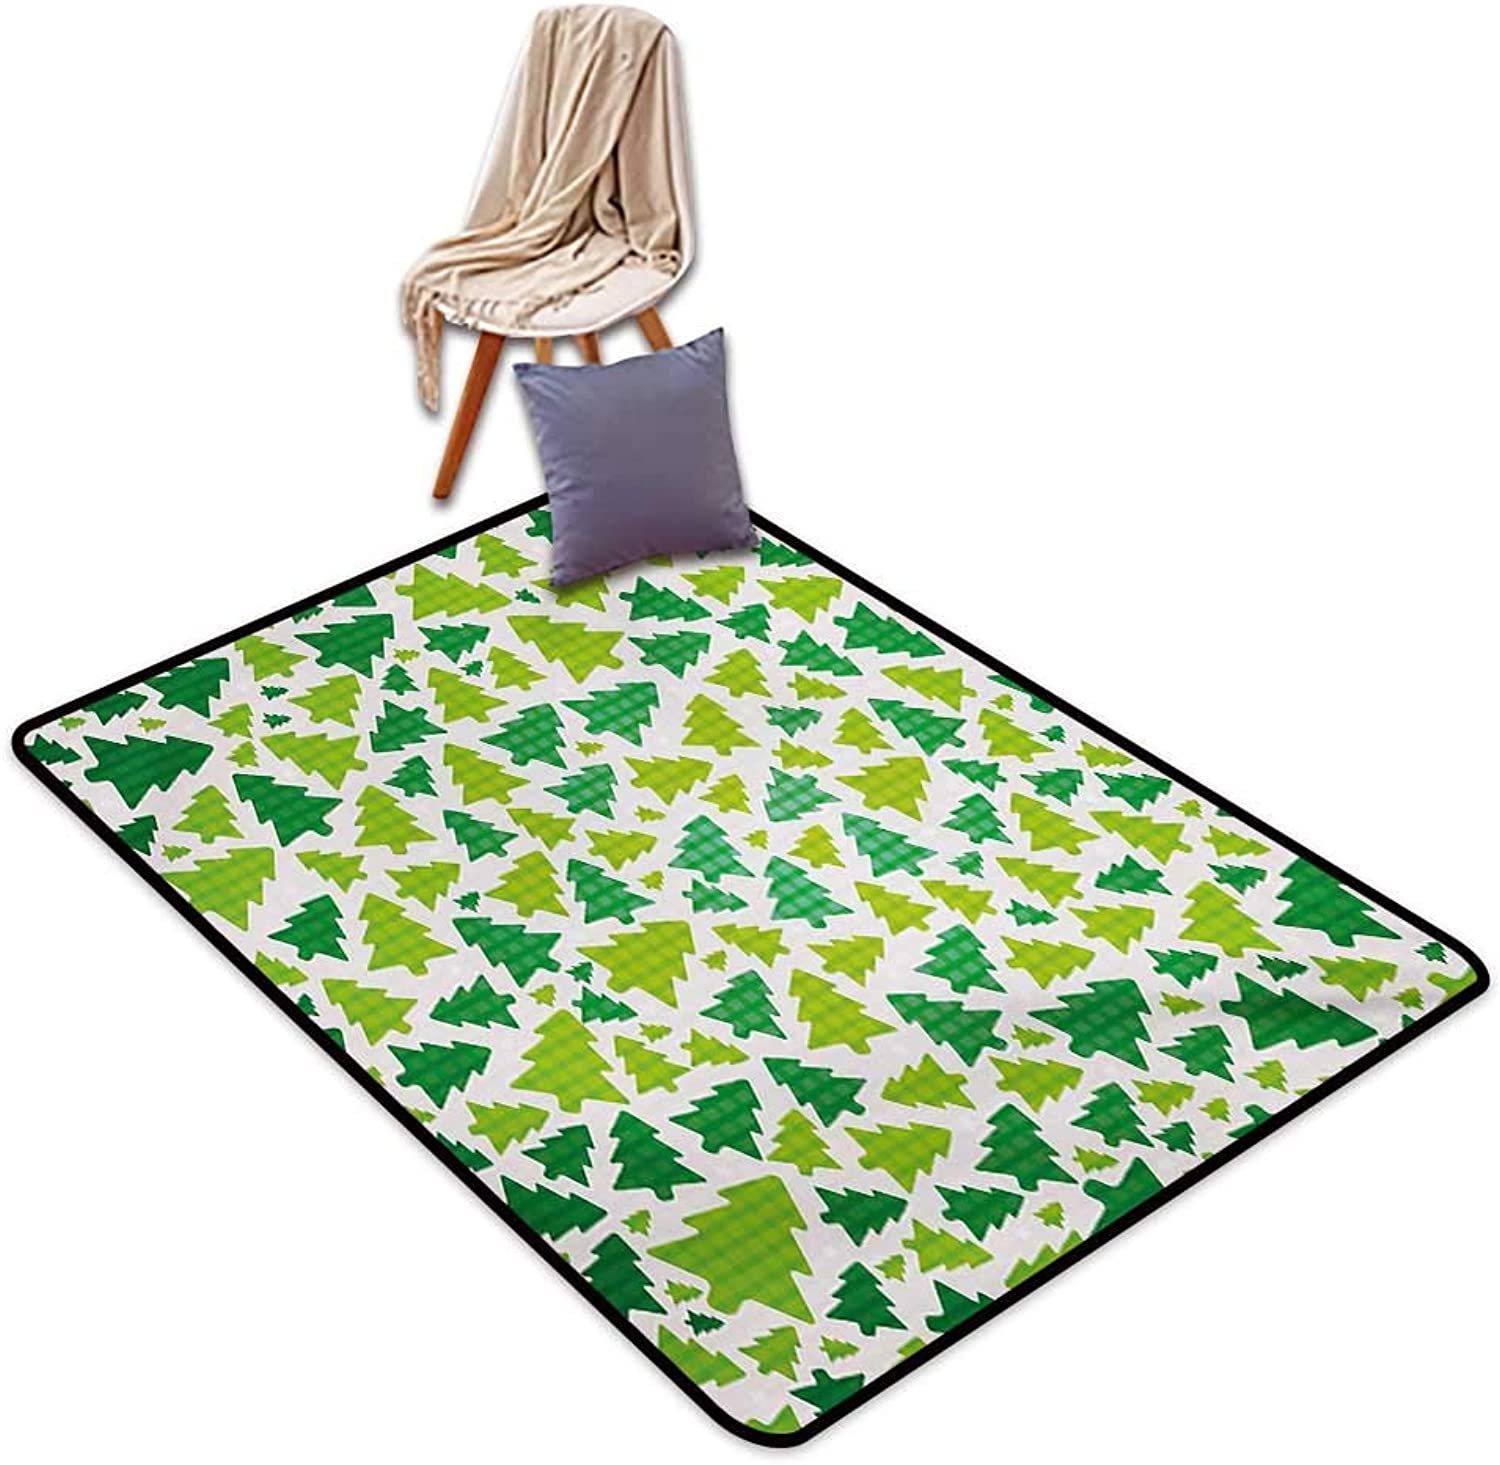 Christmas Large Outdoor Indoor Rubber Doormat Simplistic Fir Pine Tree Silhouettes with Checkered Pattern Water Absorption, Anti-Skid and Oil Proof 48  Wx59 L Fern Green Apple Green White